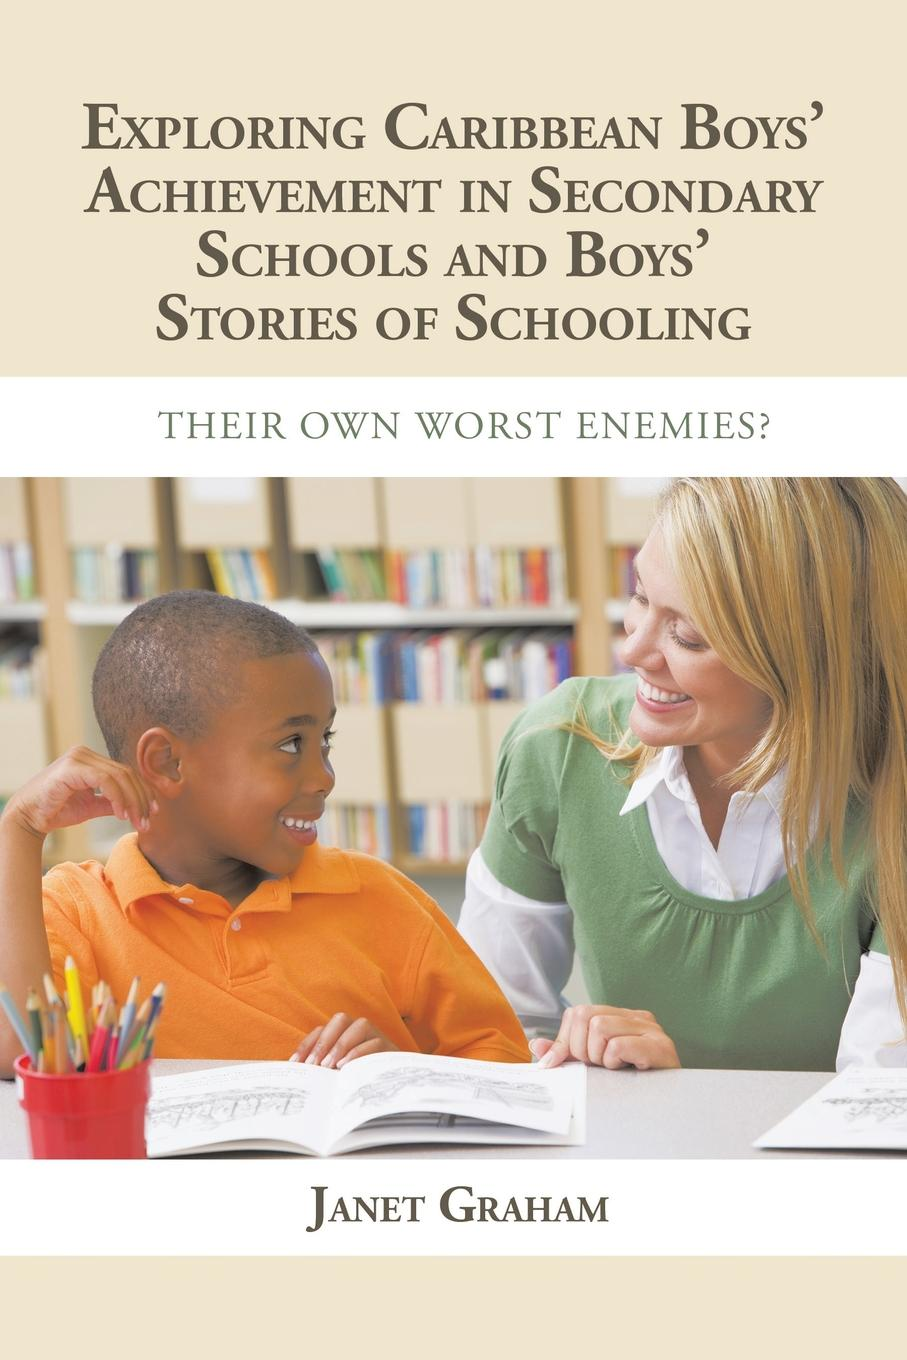 Janet Graham EXPLORING CARIBBEAN BOYS. ACHIEVEMENT IN SECONDARY EDUCATION. AND BOYS STORIES OF SCHOOLING: THEIR OWN WORST ENEMIES. цена